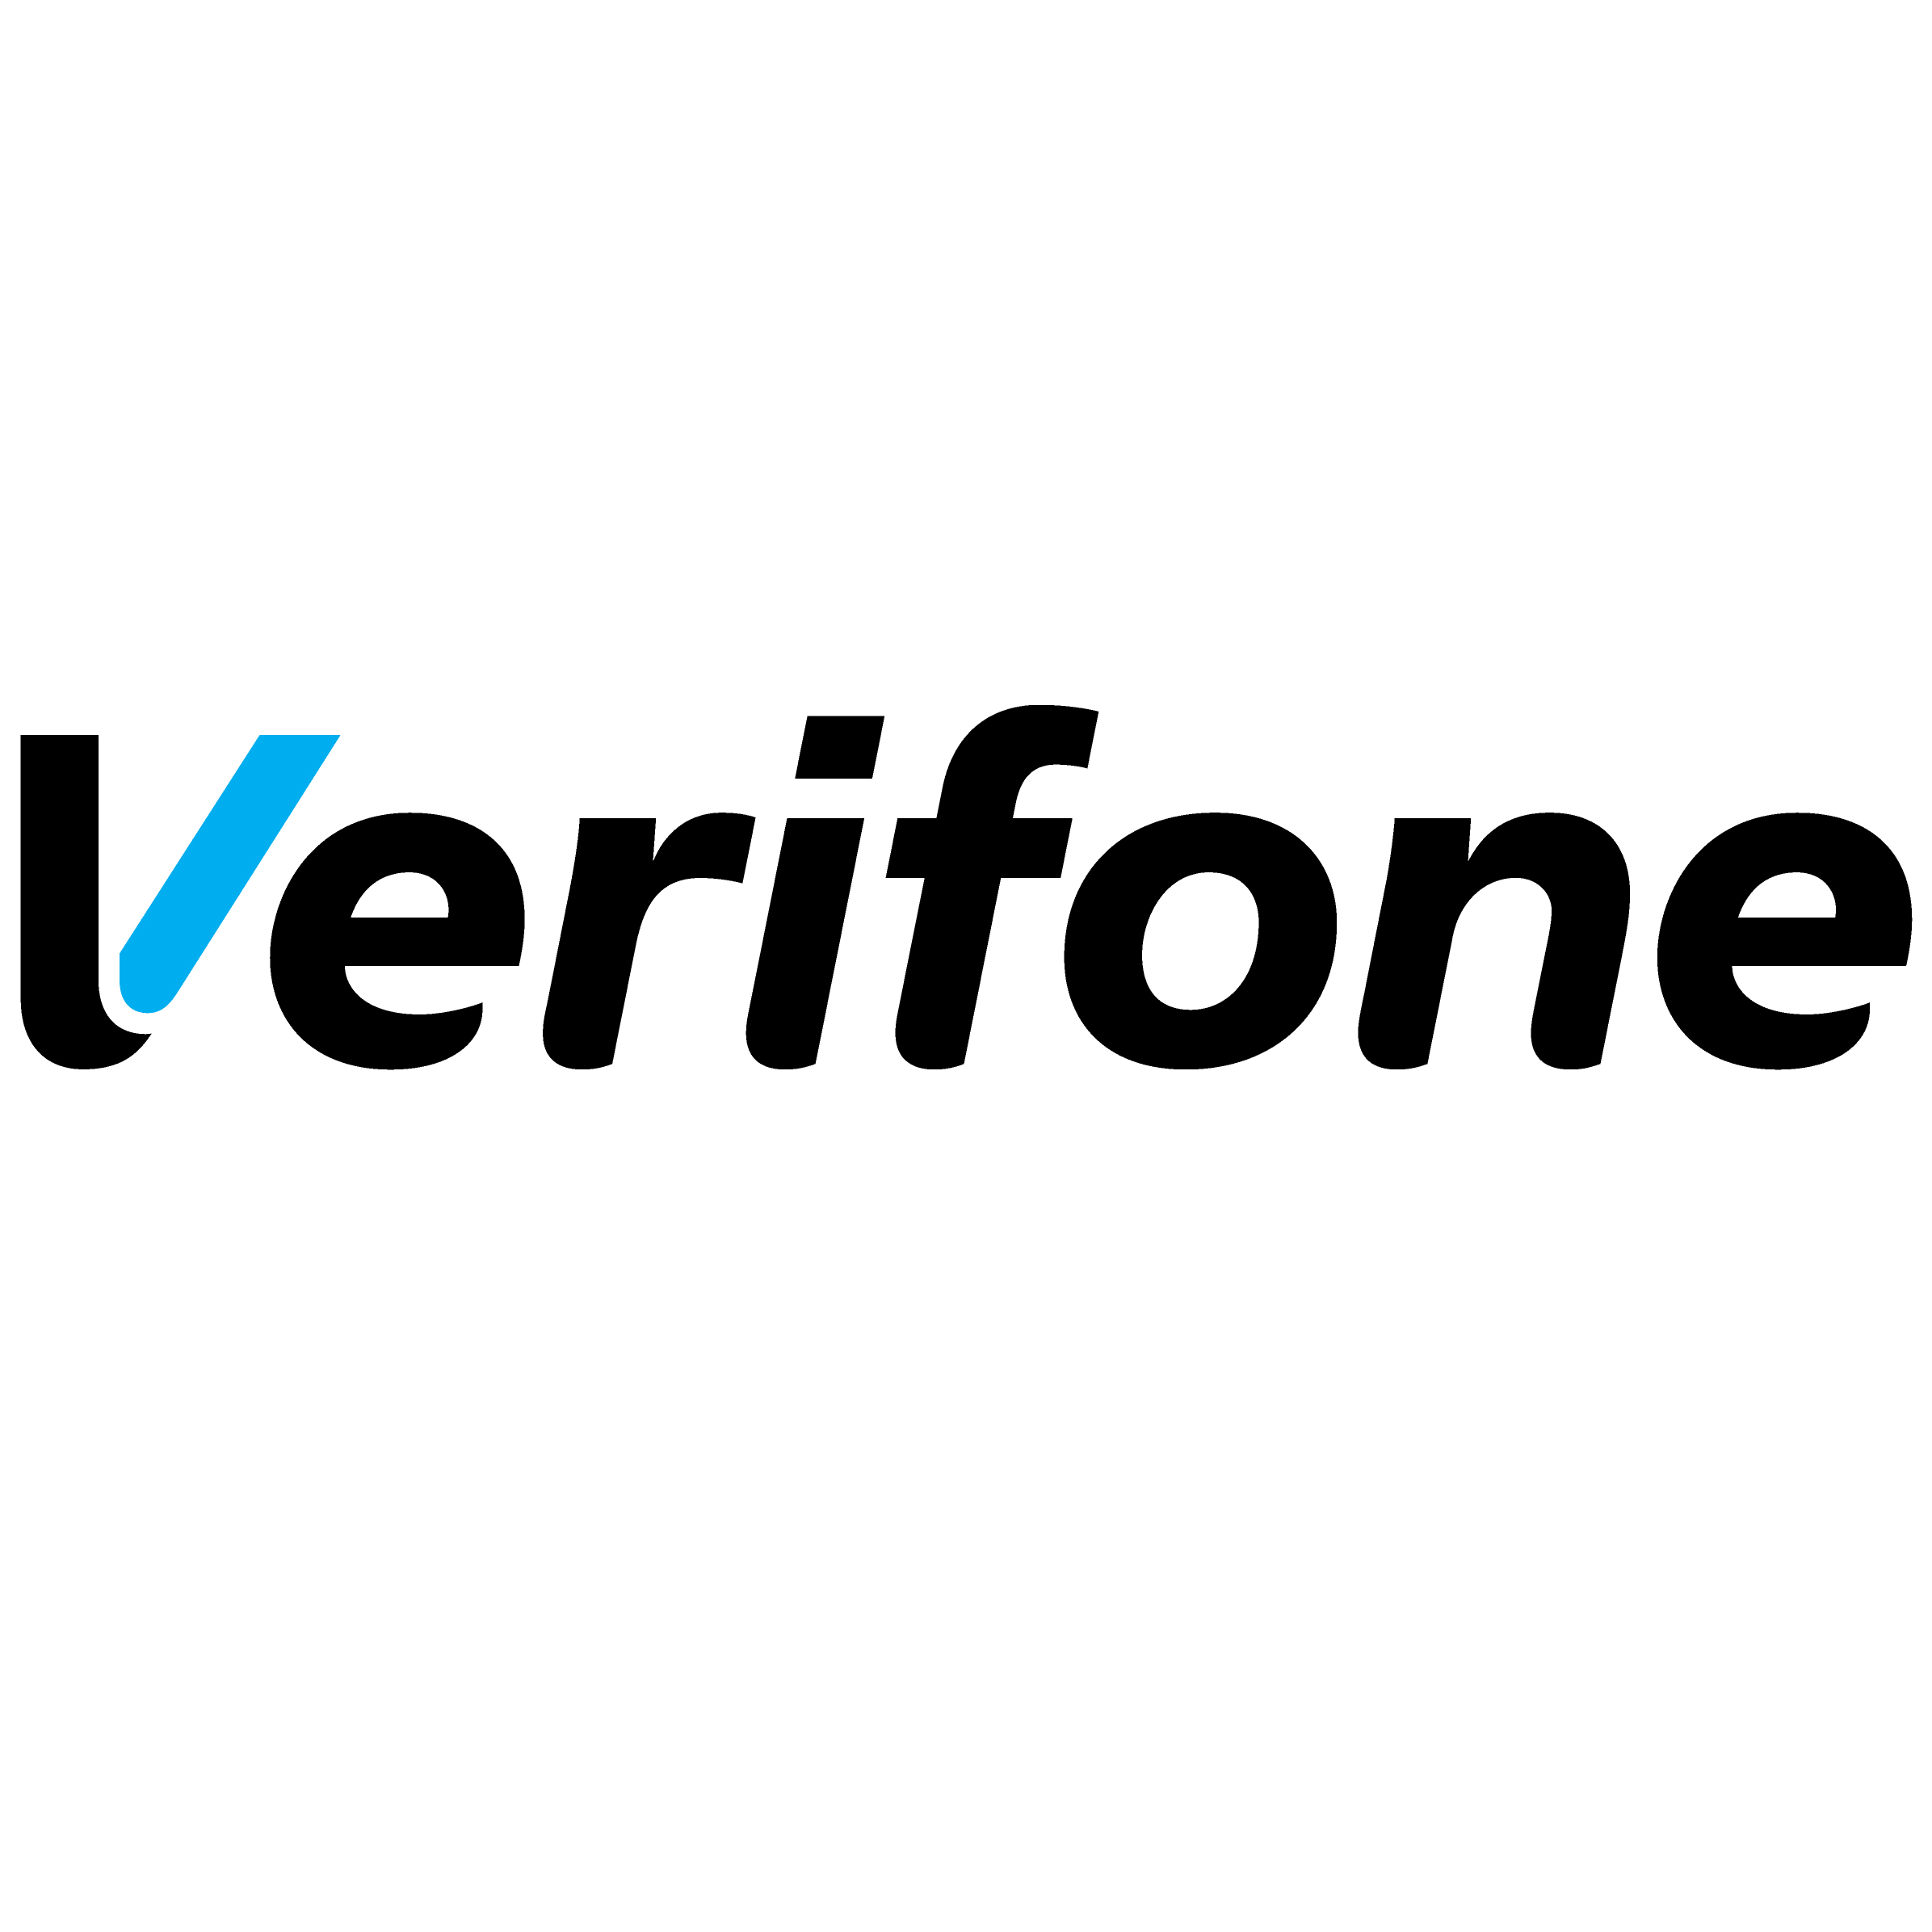 Verifone Launches Carbon 8 Portable POS Terminal